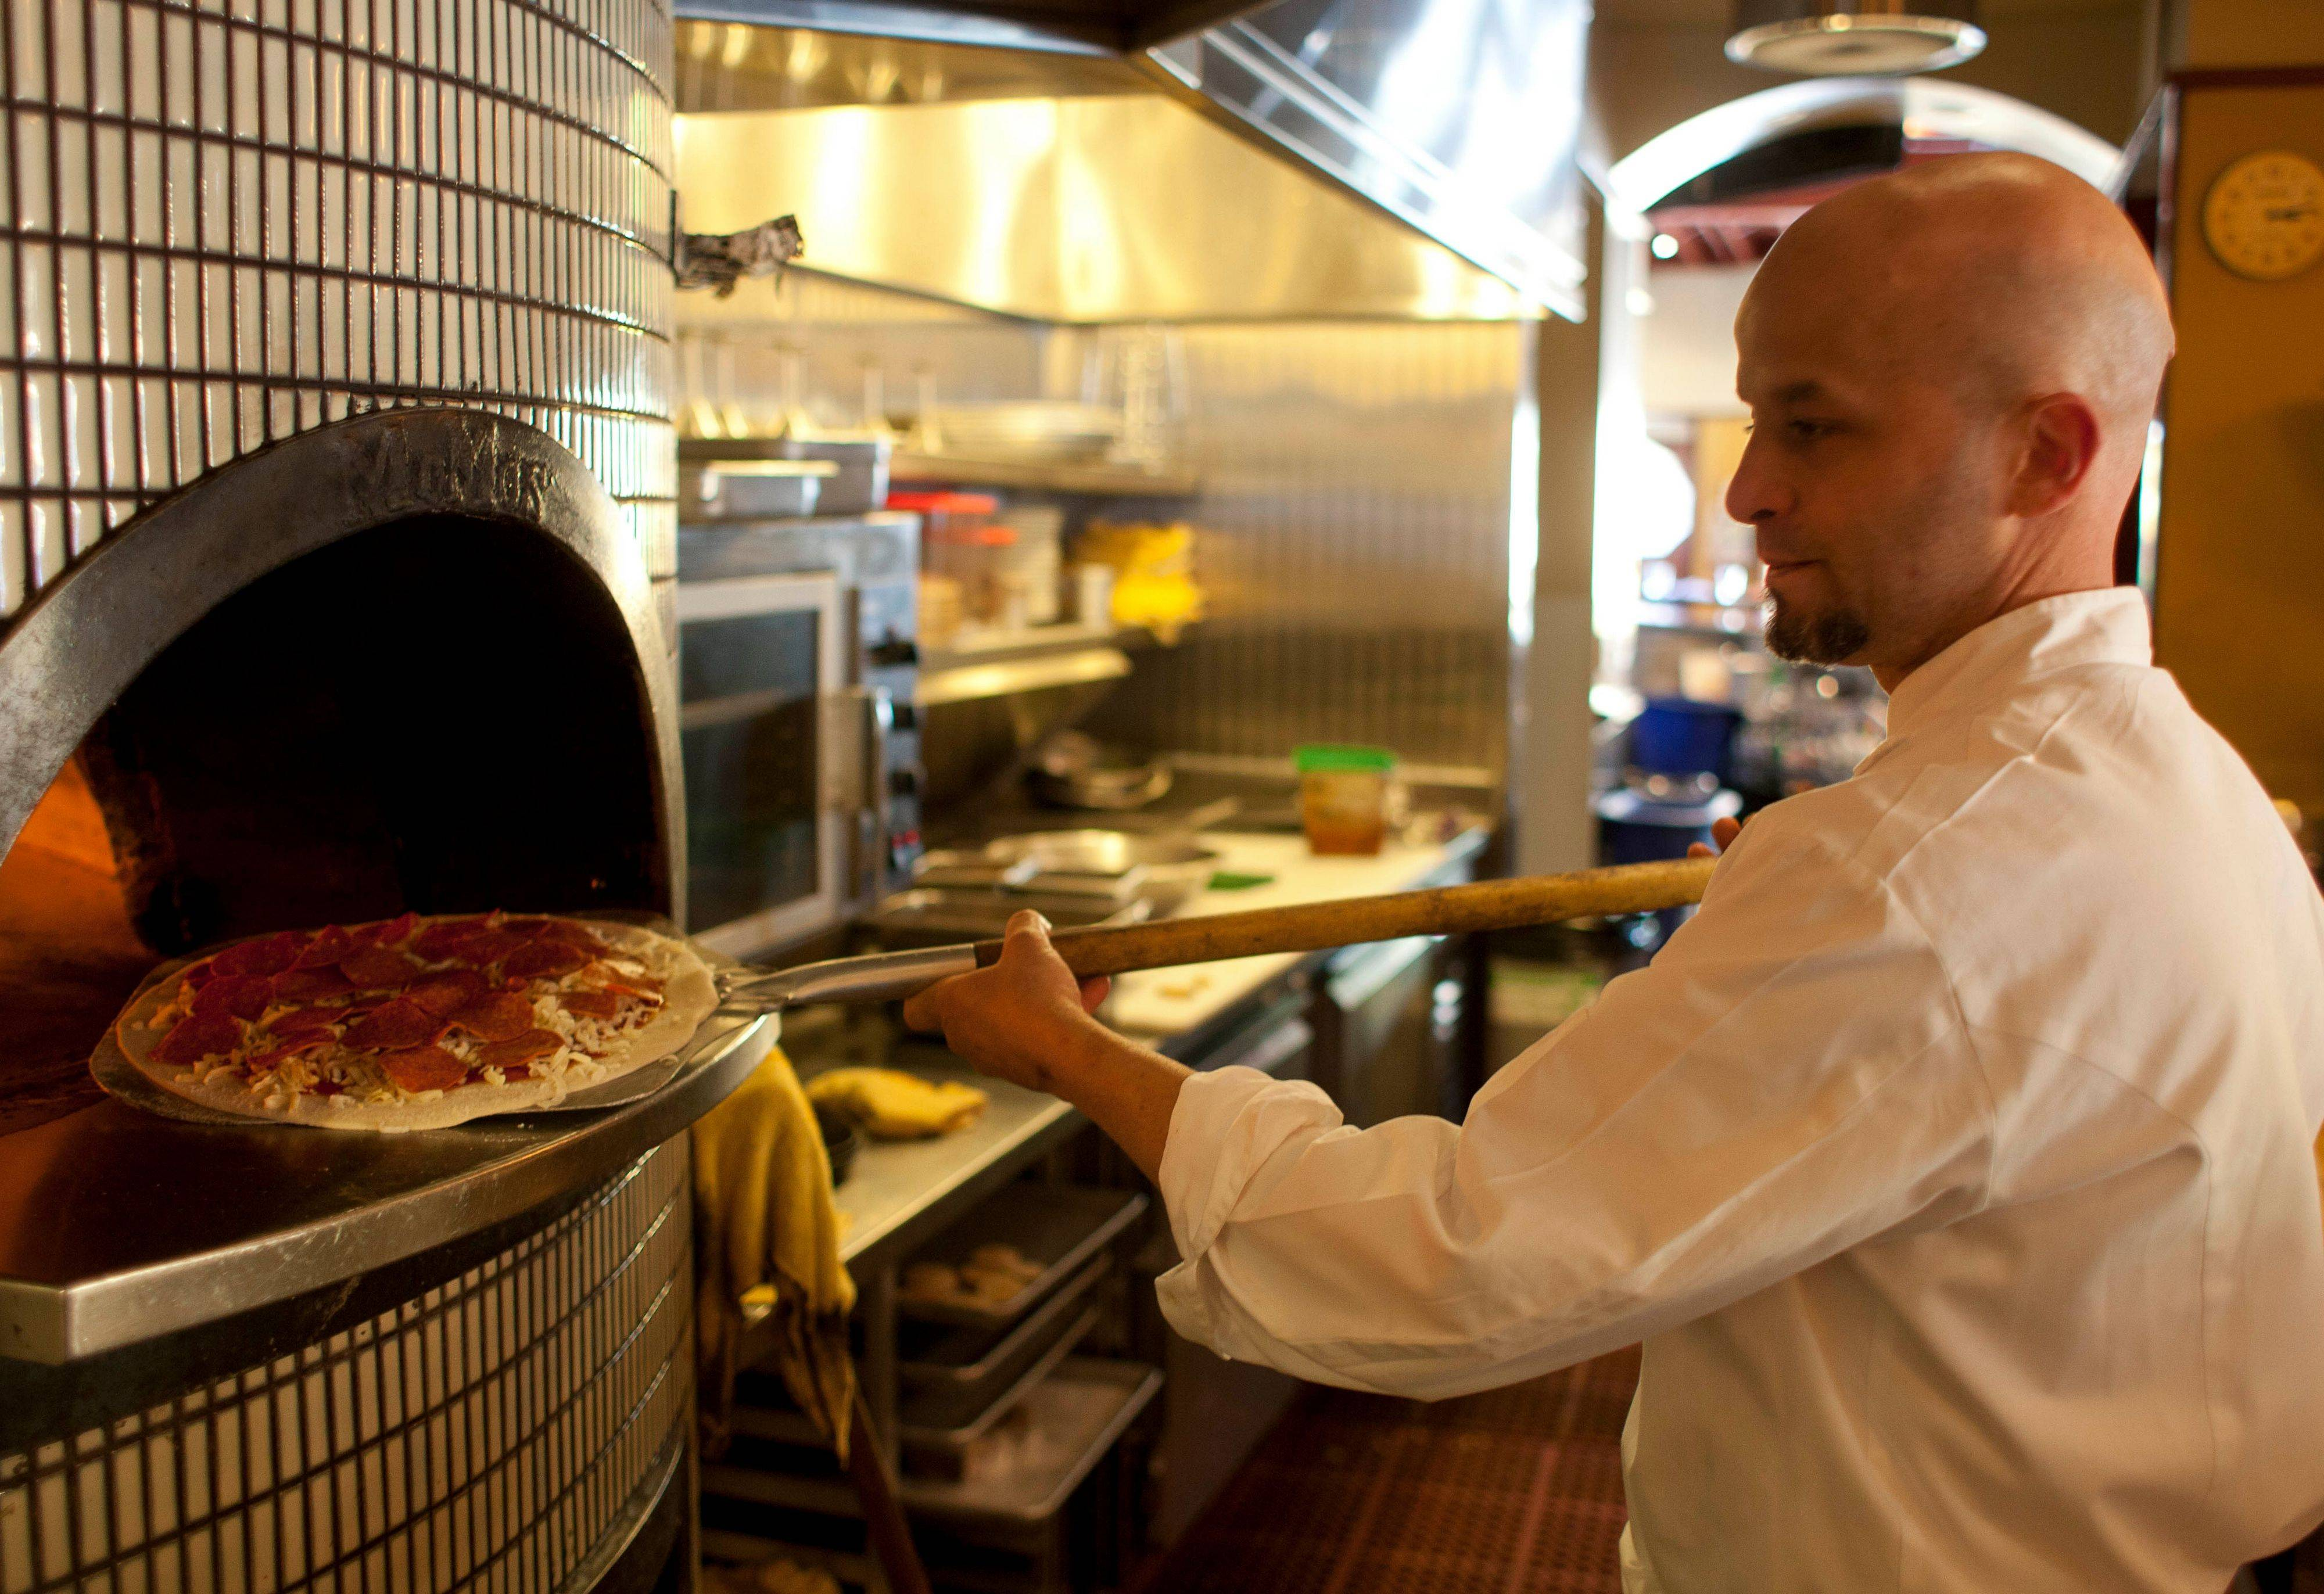 Chef Damon Hall puts a pepperoni pizza into an oven at MoMo's restaurant in San Francisco. With a wood-burning oven at MoMo's, Hall can more than banish the ghosts of pizzas past using fresh seasonings to kick up the taste.